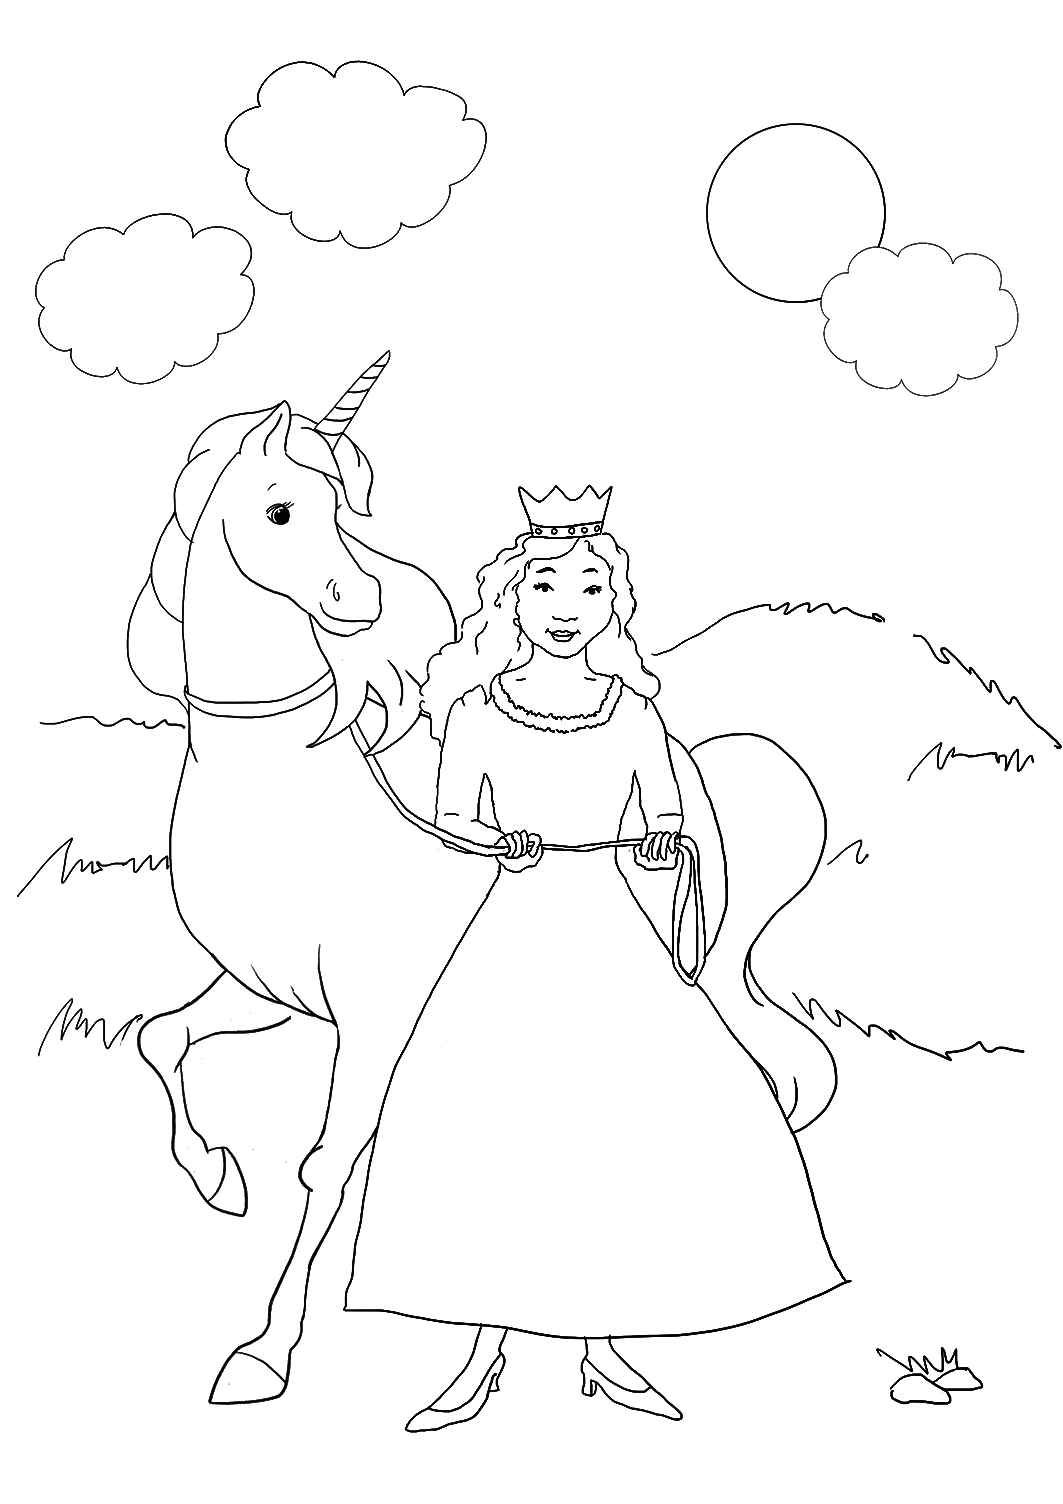 coloring page with Princess and unicorn